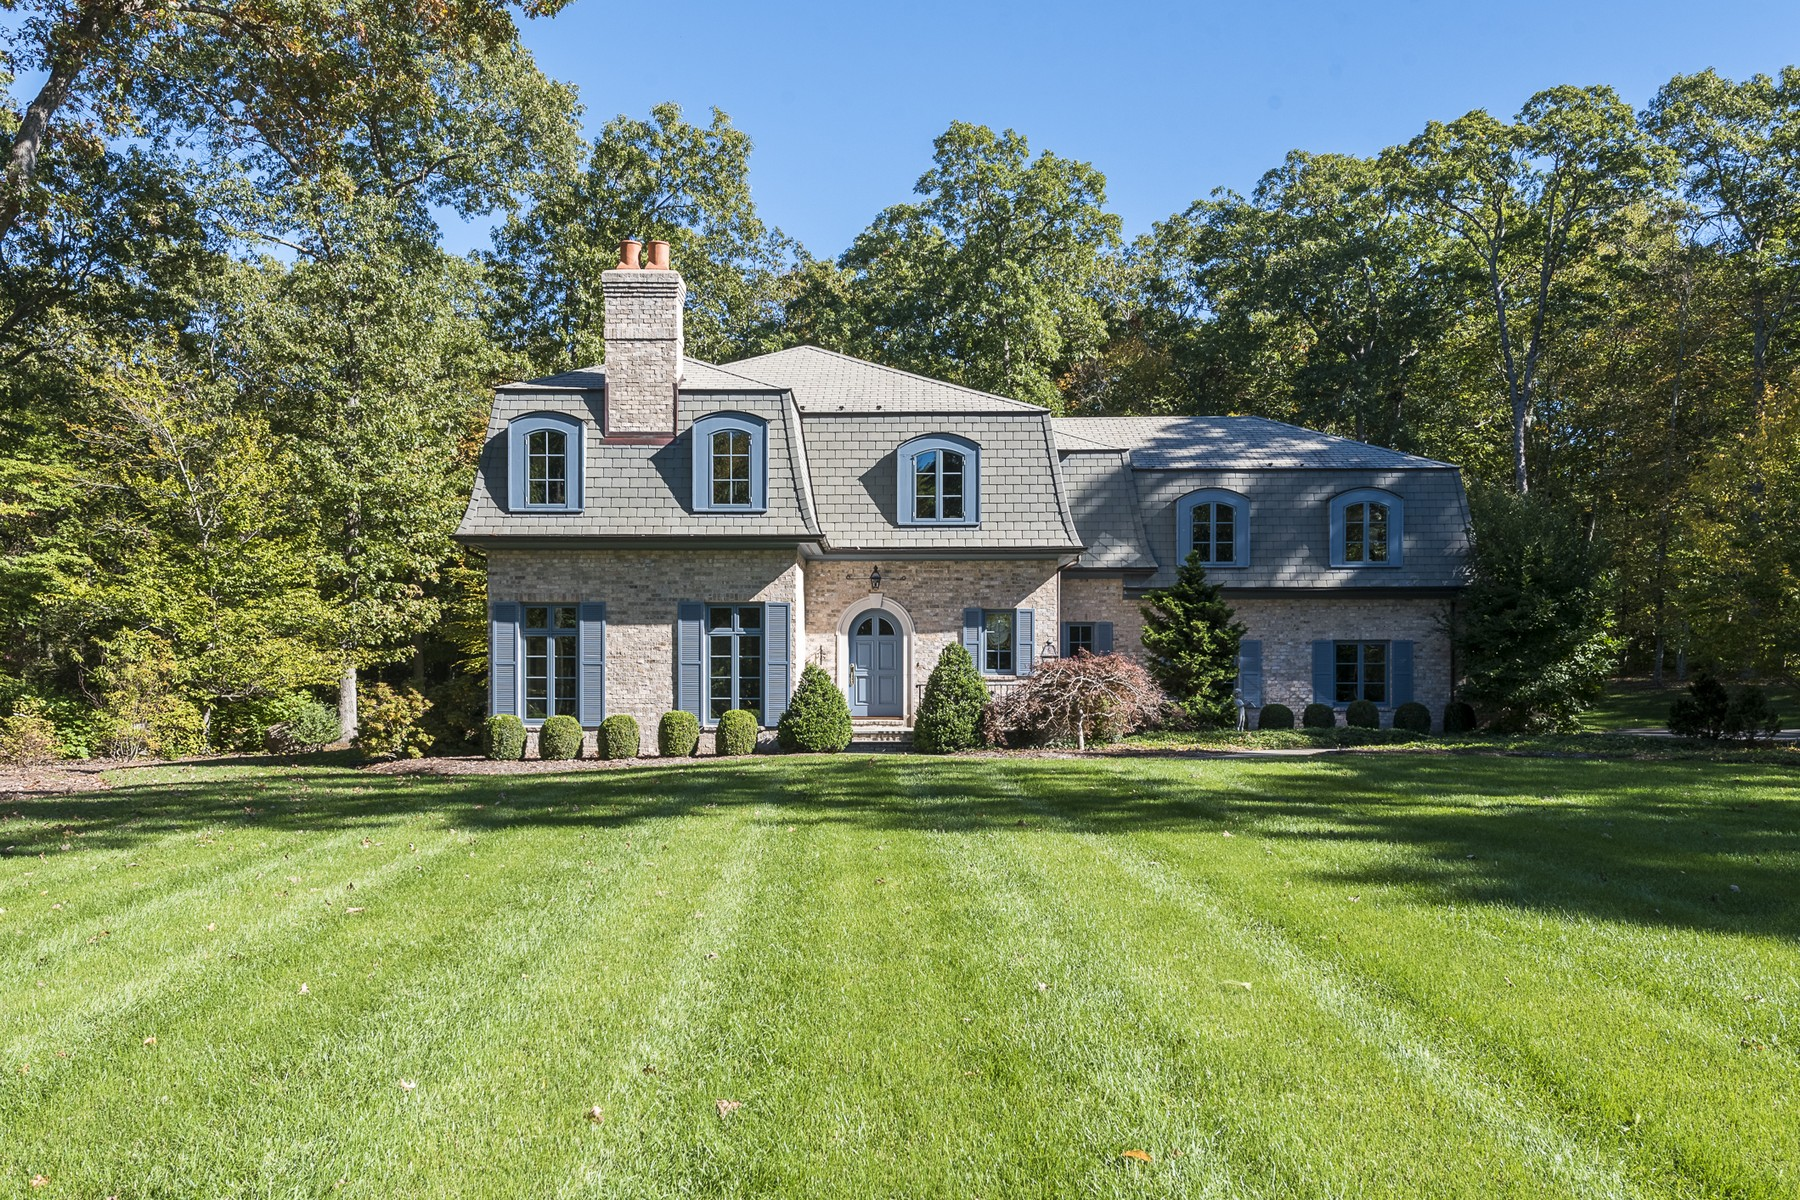 Vivienda unifamiliar por un Venta en Brick & Slate French Tudor on Private Cul-de-Sac 36 Watrous Point Rd Old Saybrook, Connecticut, 06475 Estados Unidos